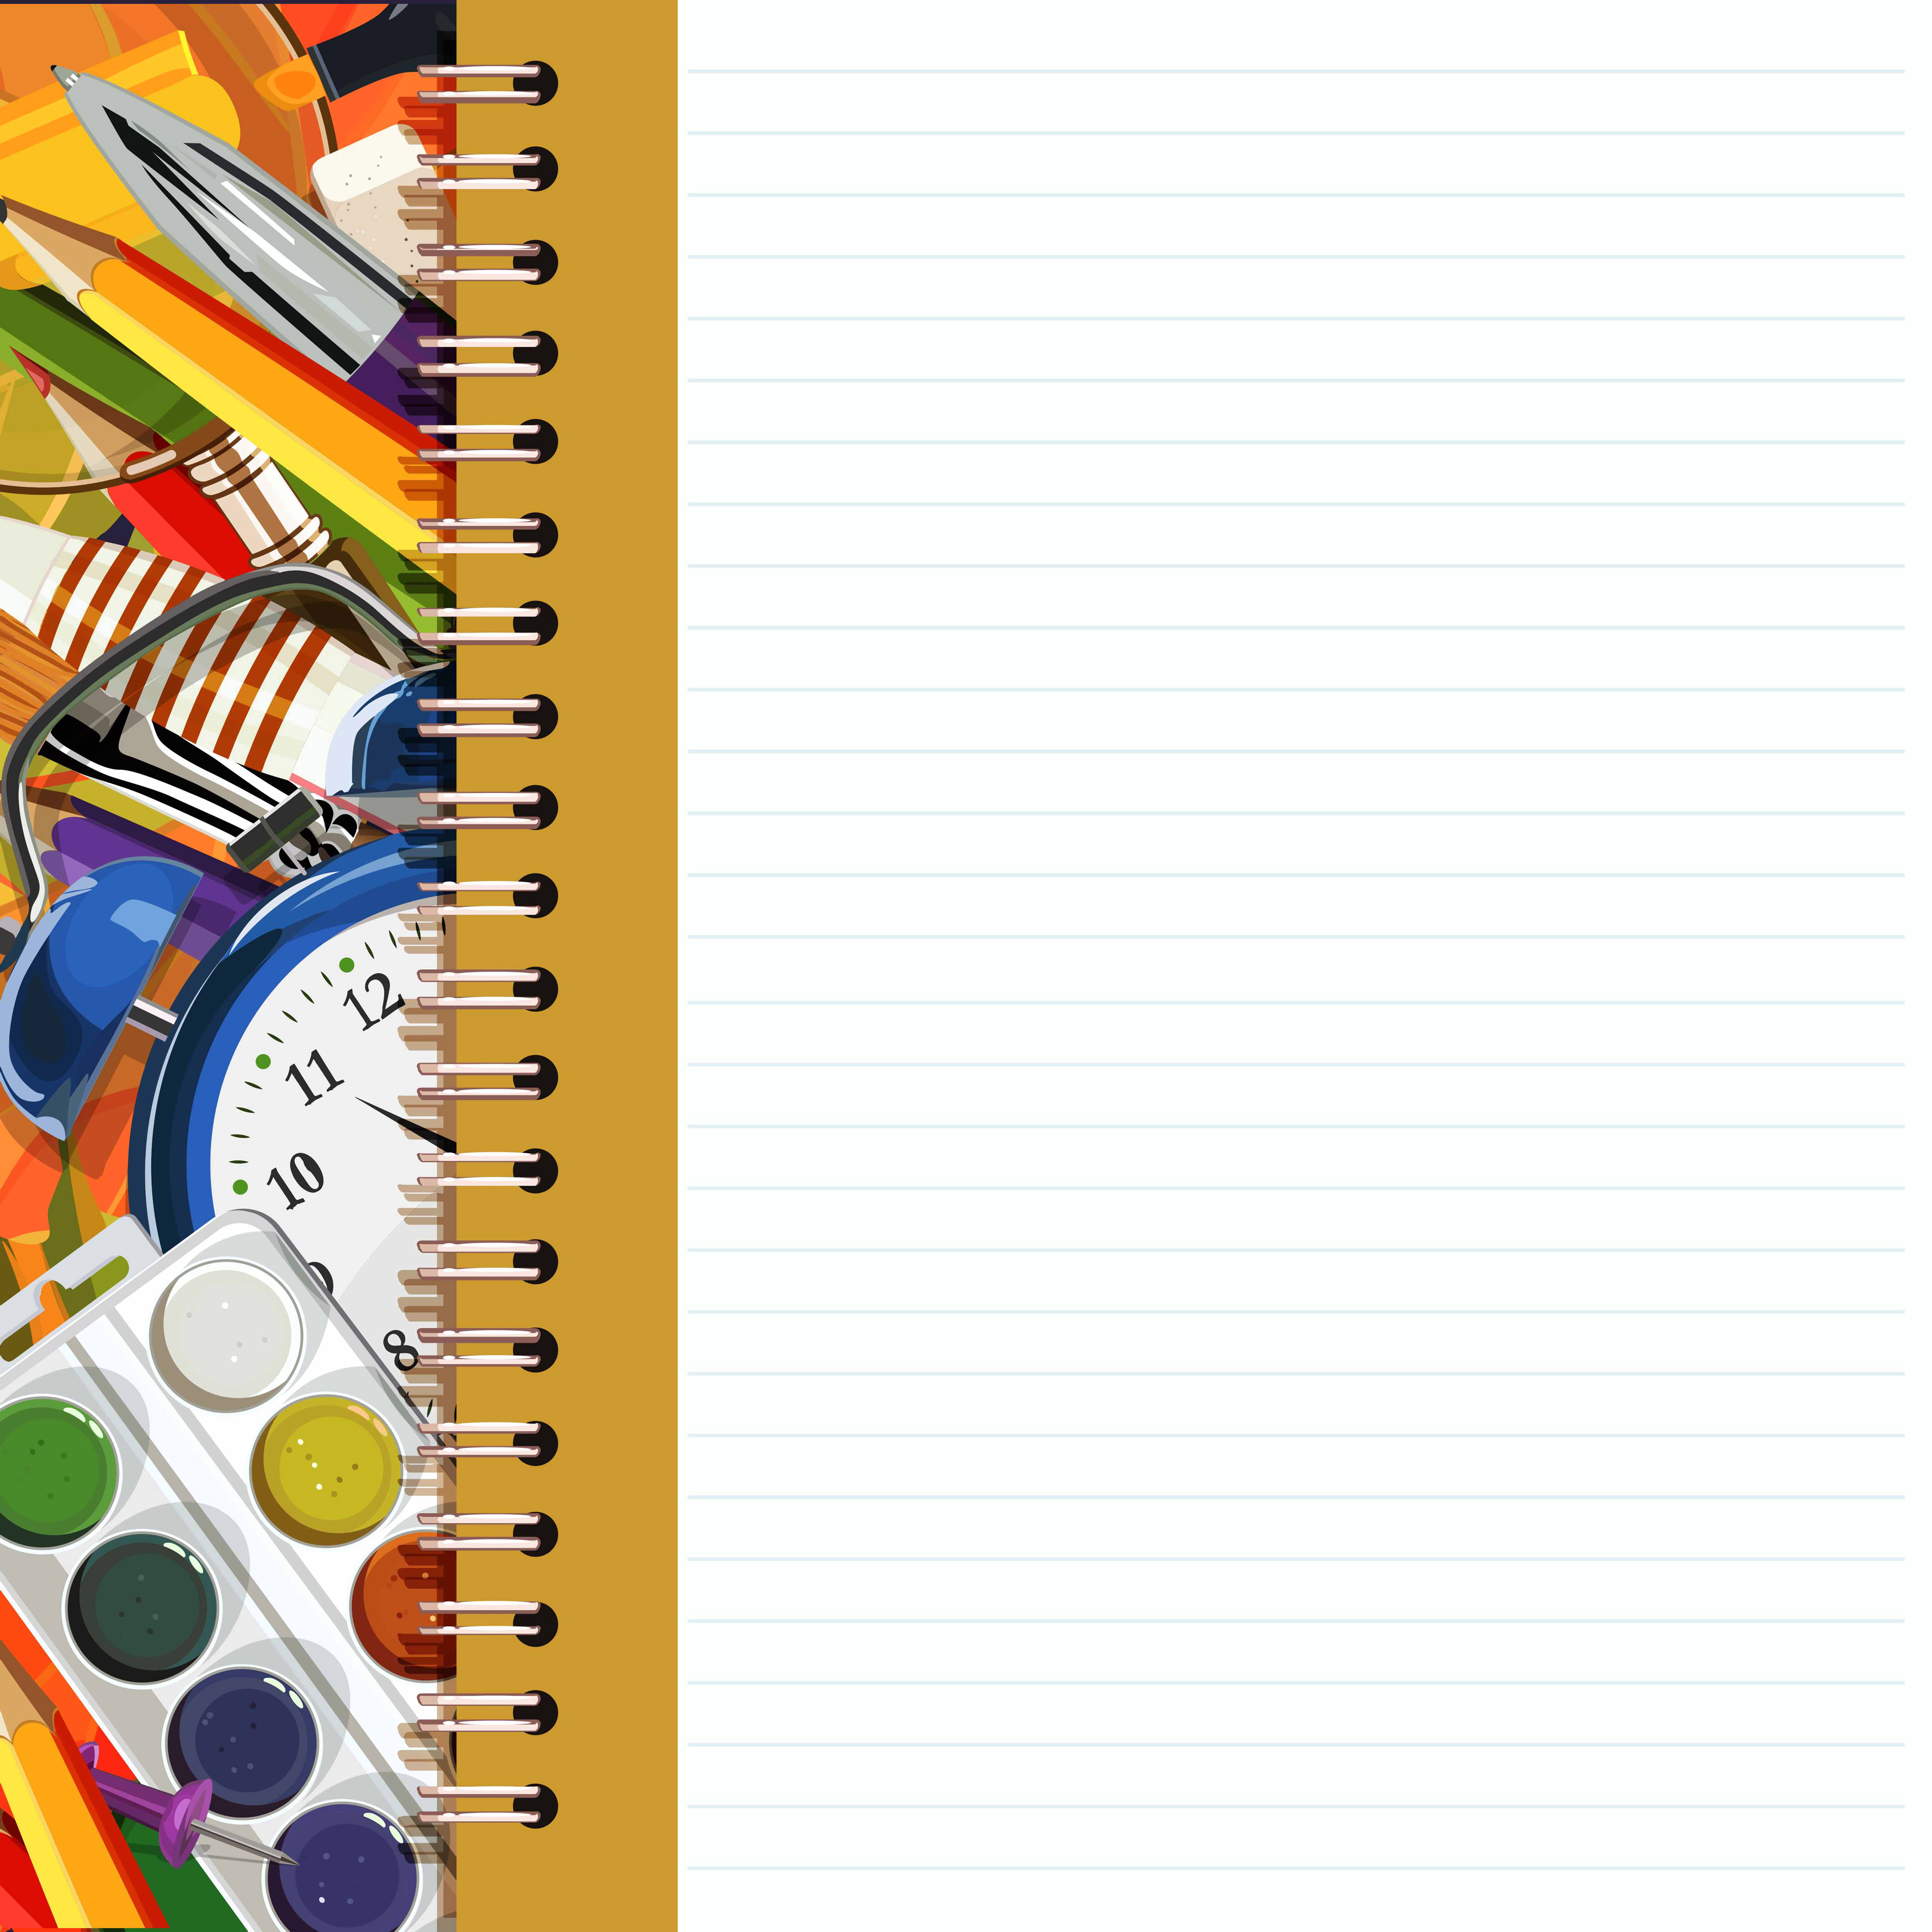 Notebook clipart school notebook Wallpaper Notebook Quality Yopriceville Gallery